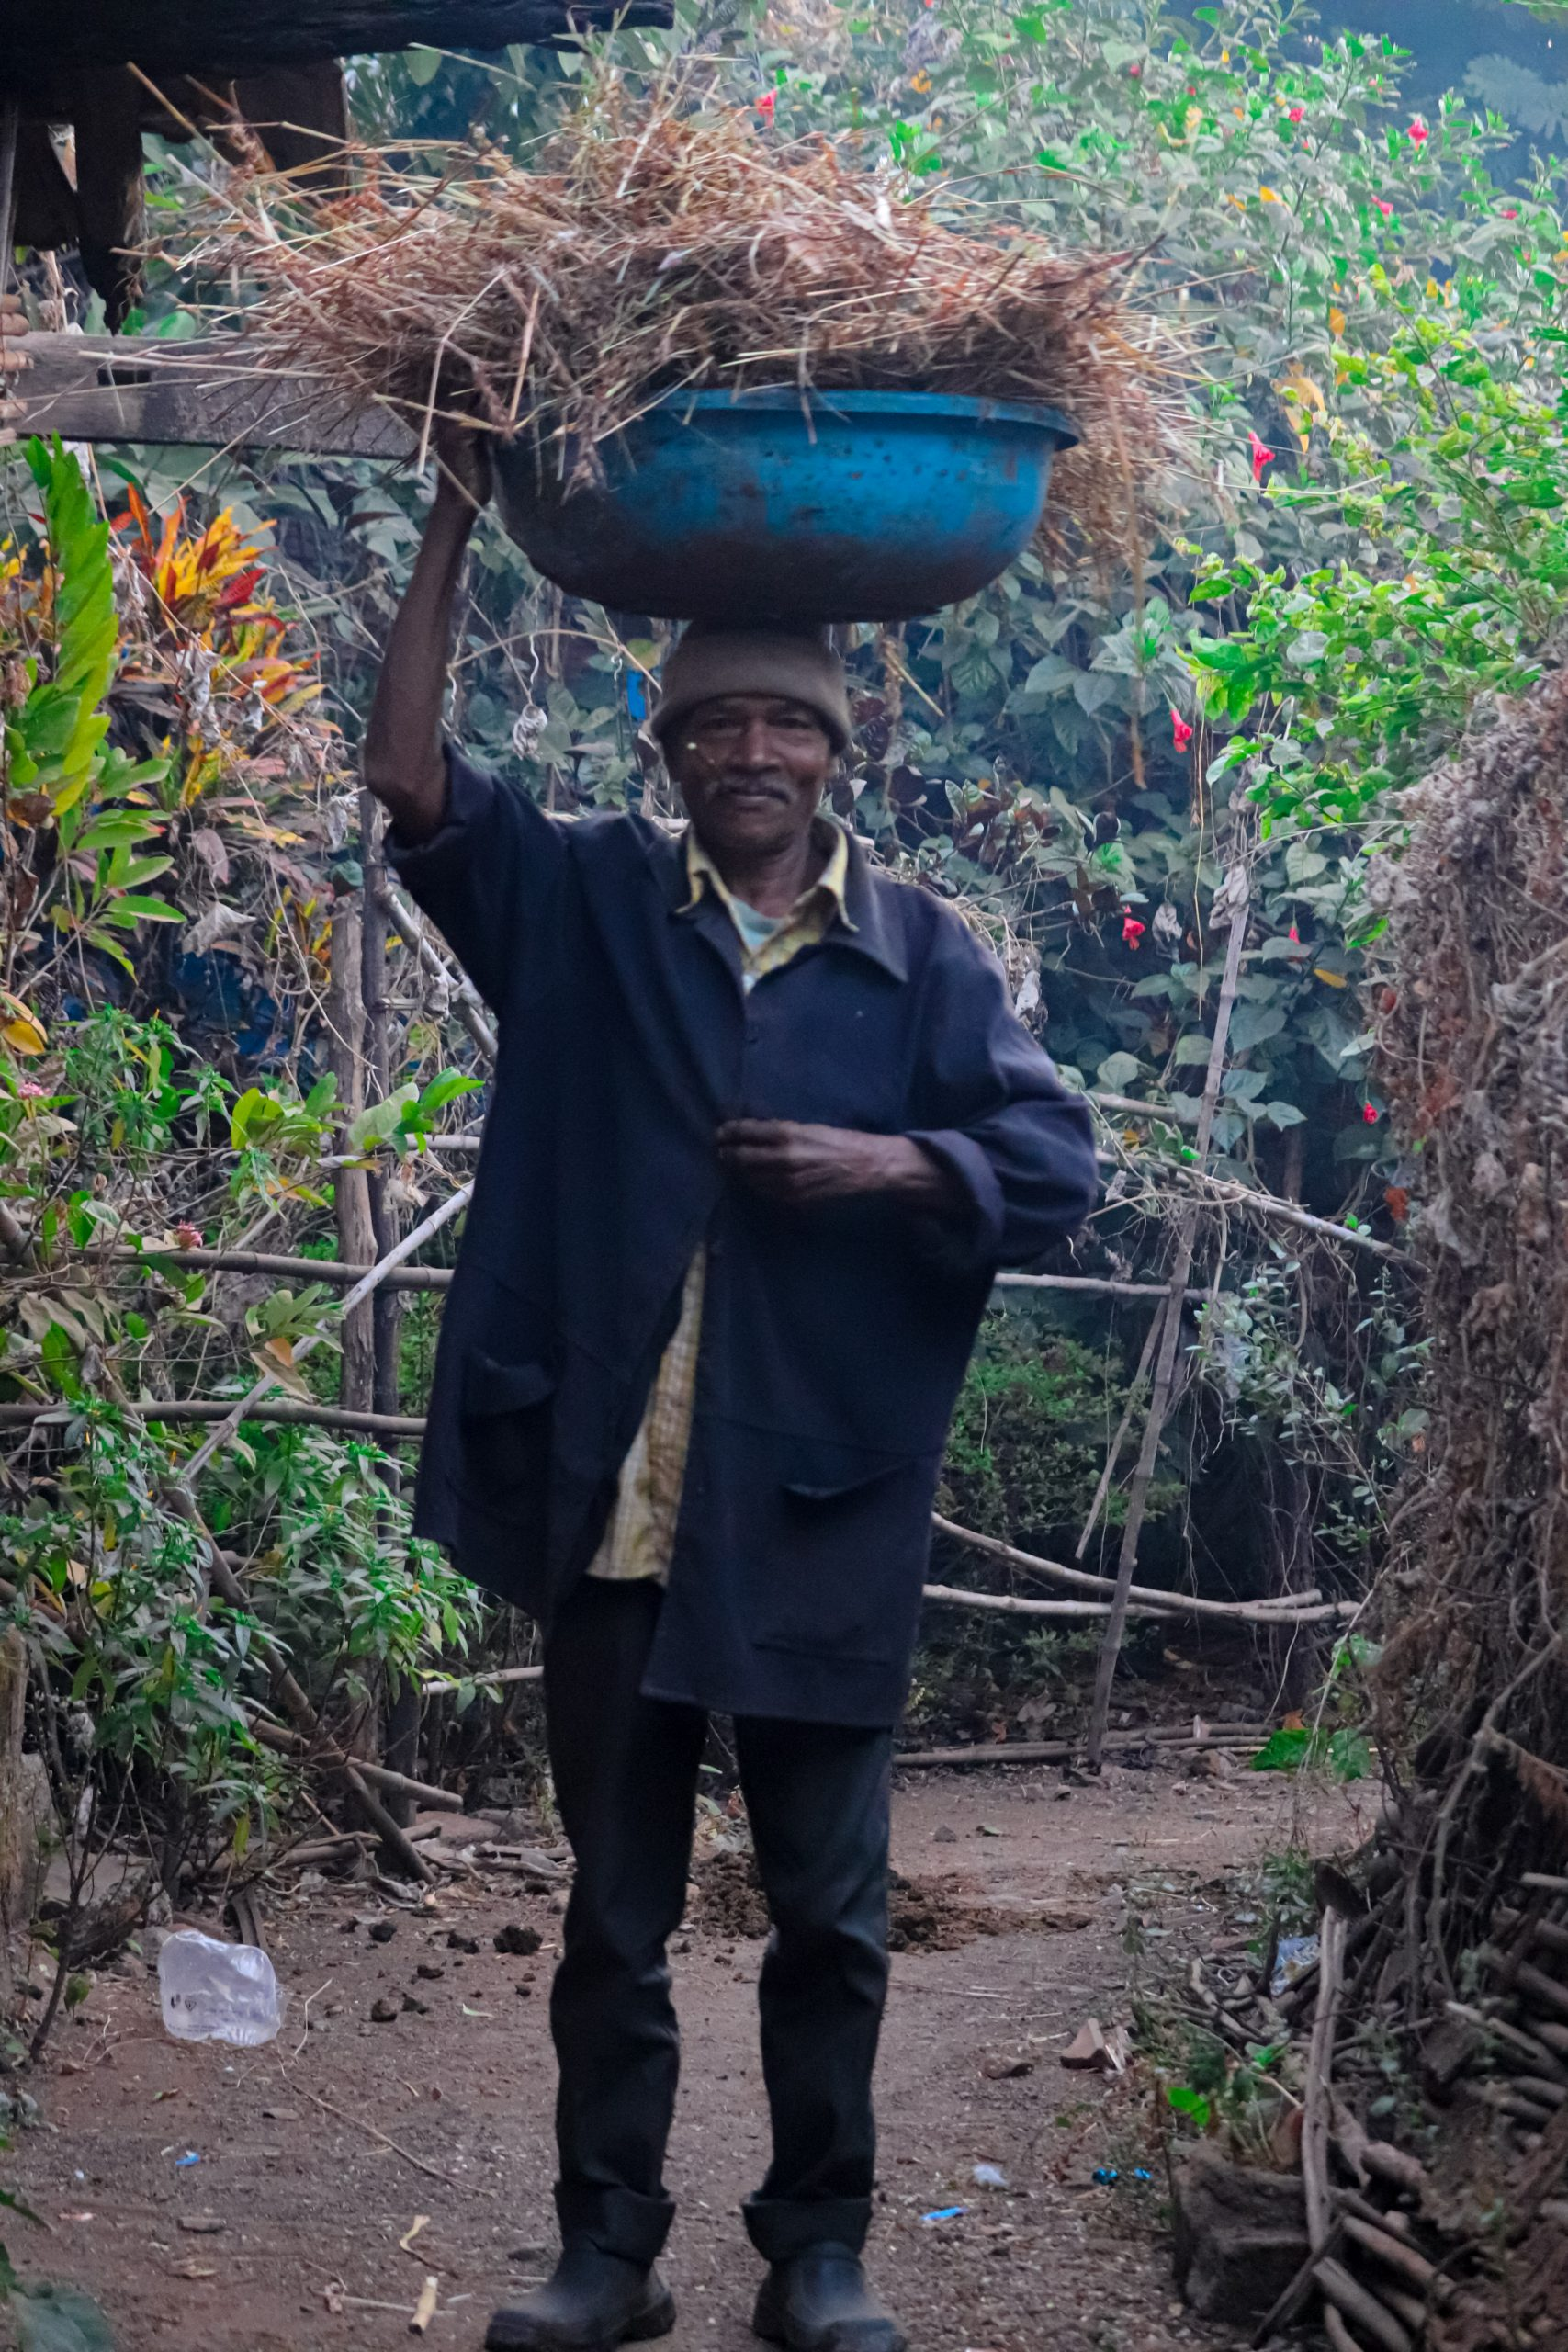 A village man carrying waste basket